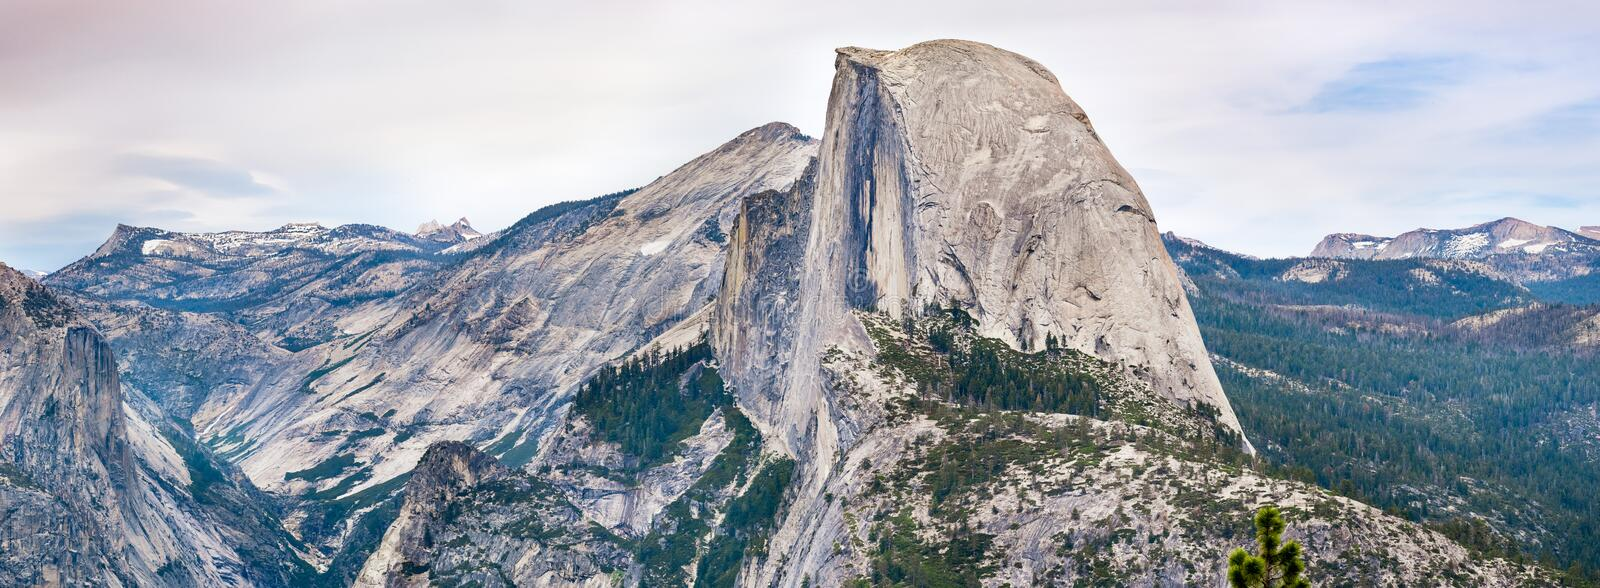 Panoramic view of the majestic Half Dome and the surrounding wilderness area with mountain peaks and ridges still covered by snow. Yosemite National Park stock photography